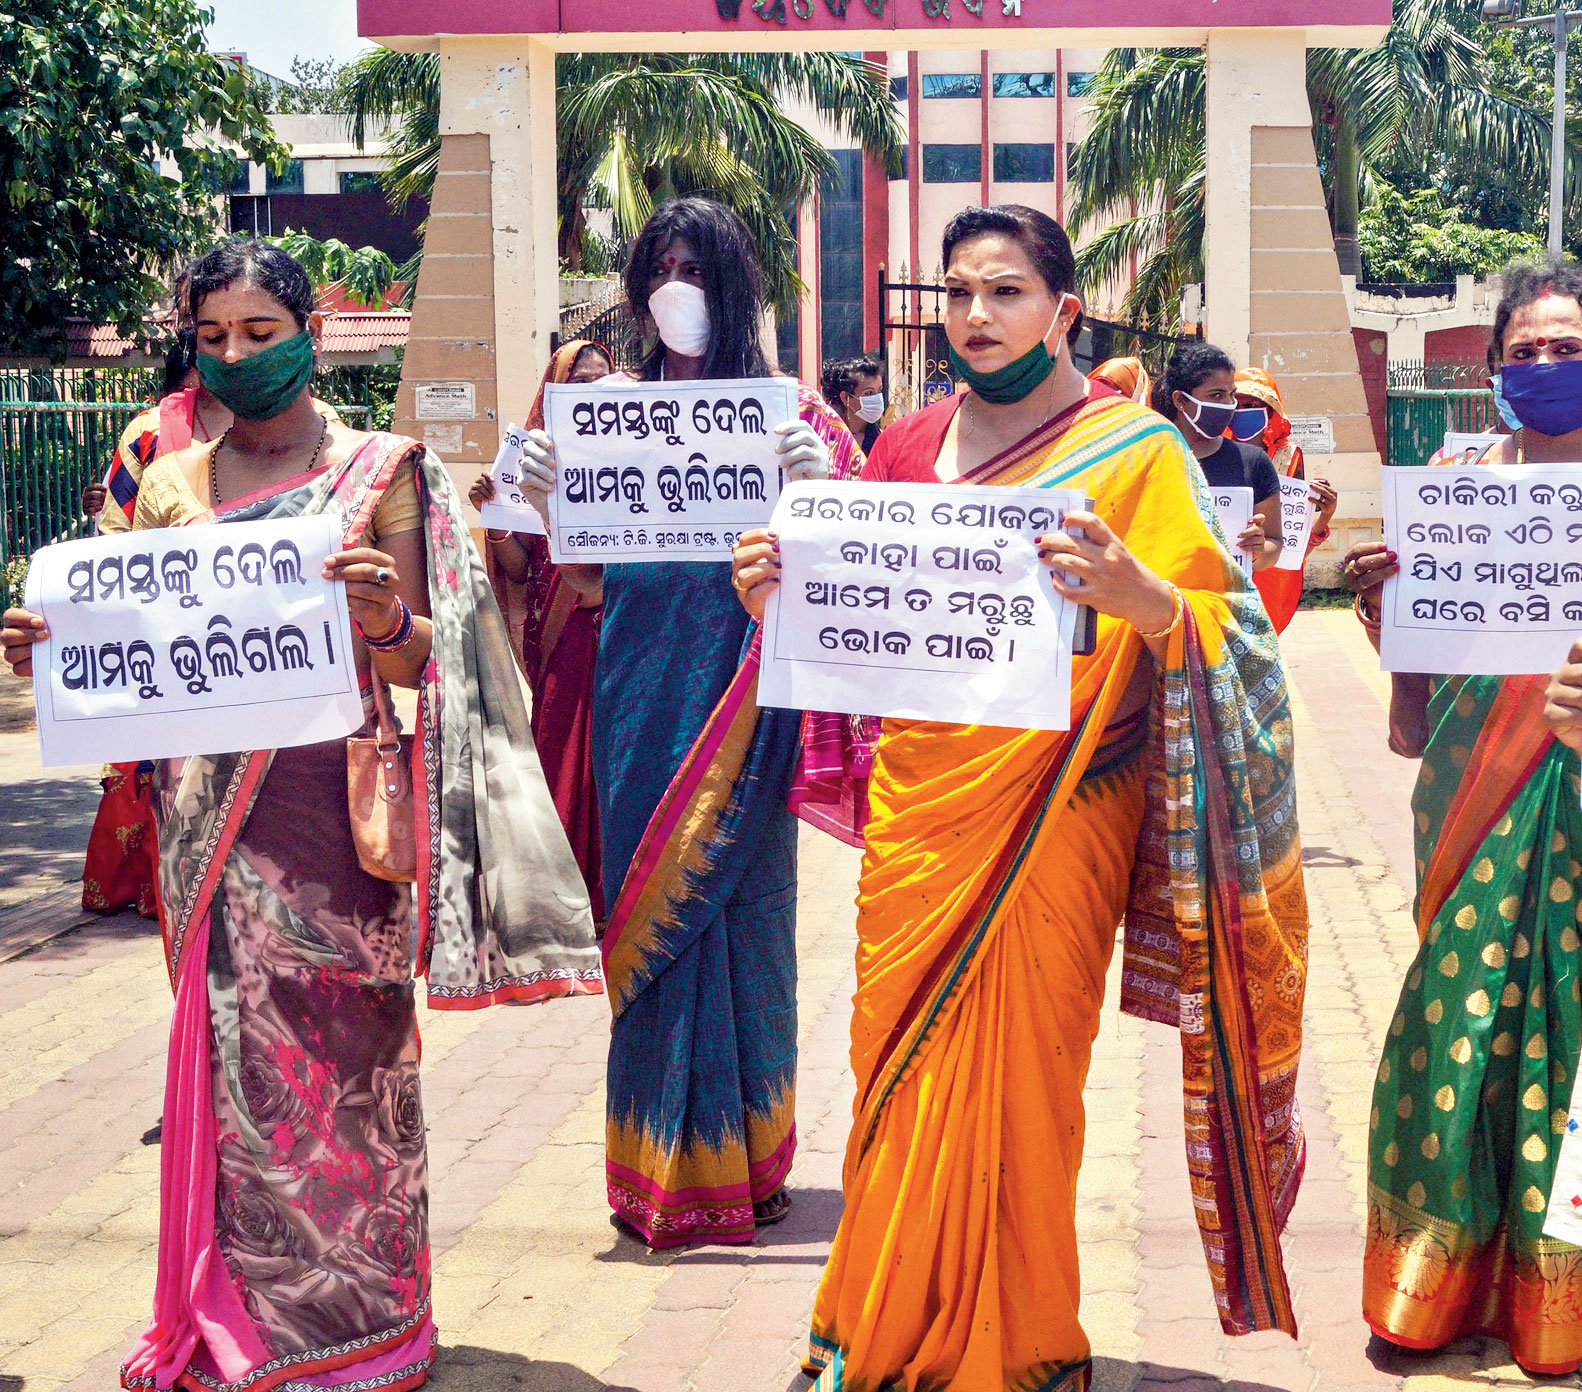 Members of the transgender community at a demonstration, demanding financial compensation, in Bhubaneswar on Tuesday.